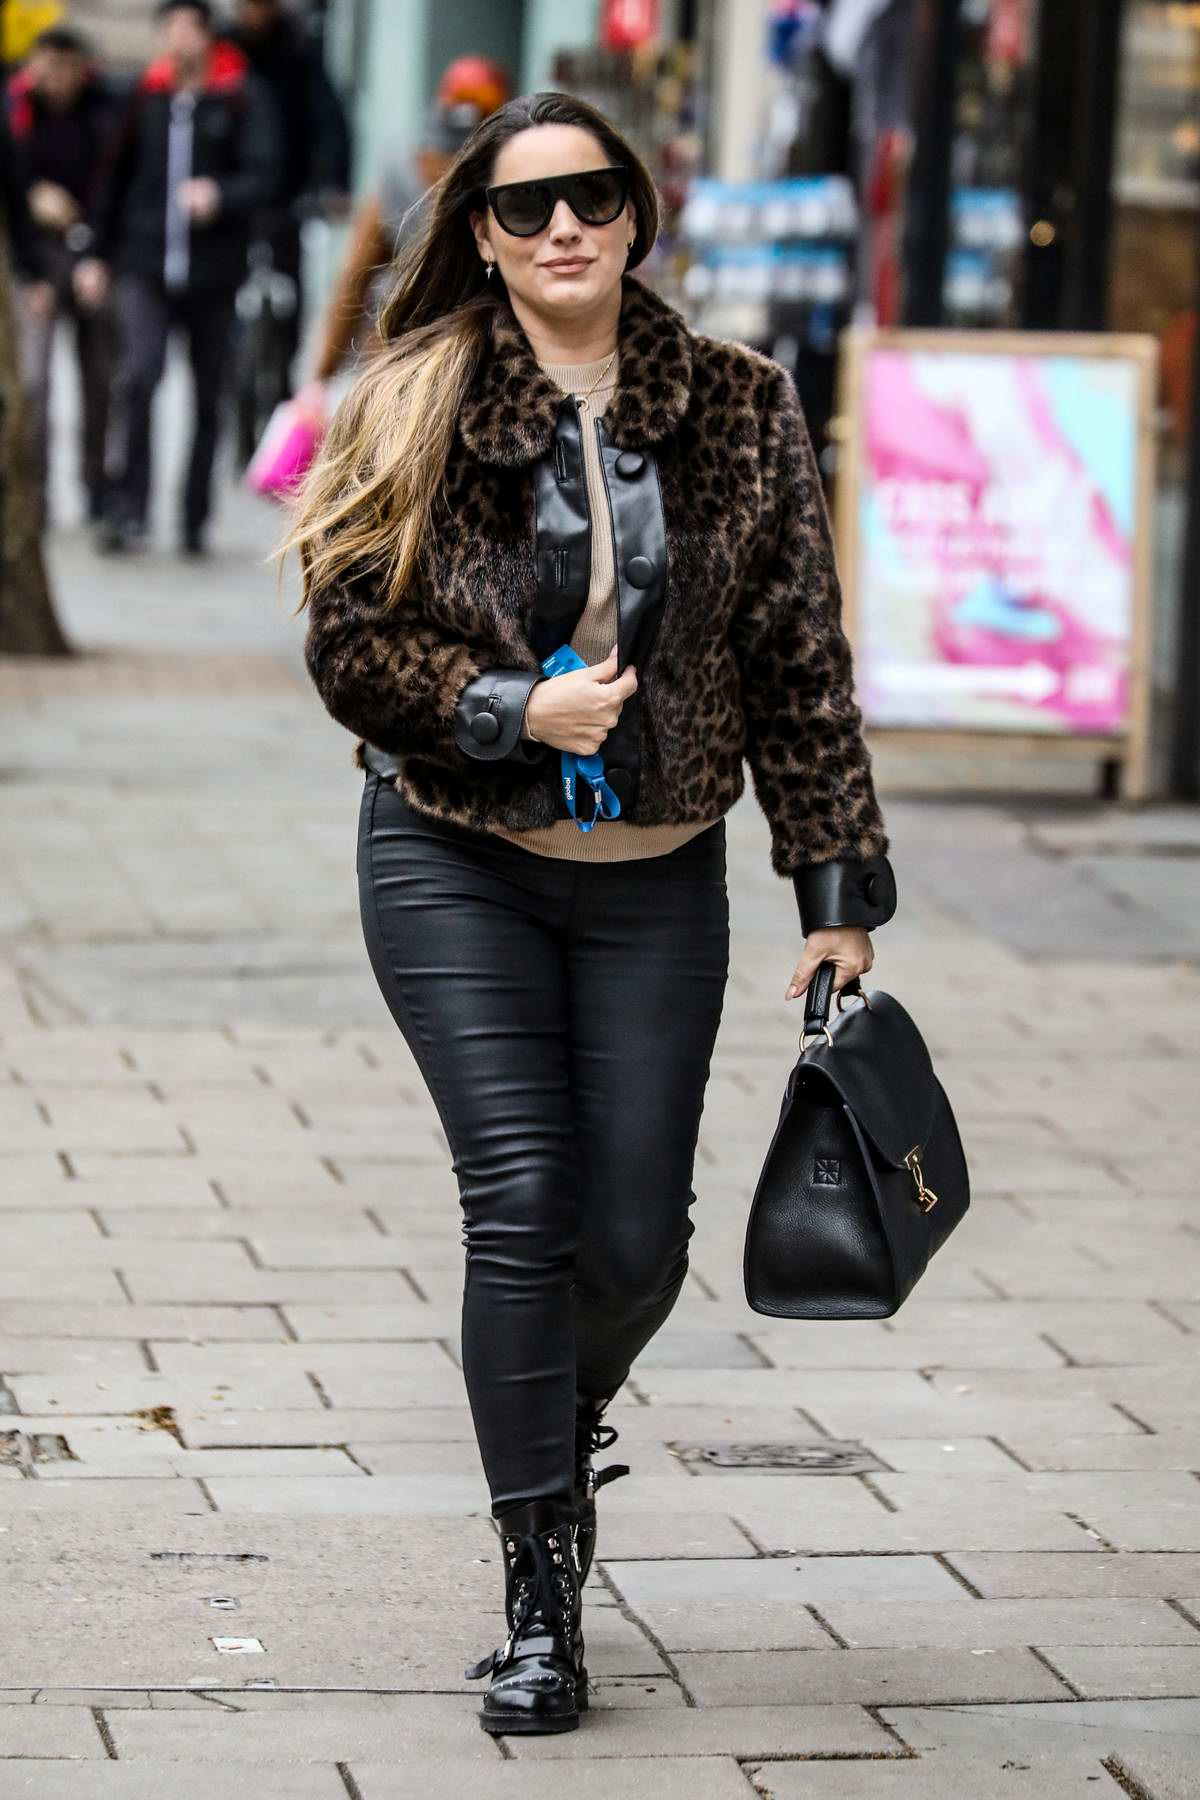 Kelly Brook looks stylish in an animal print jacket and black leather pants as she arrives at Global Radio in London, UK